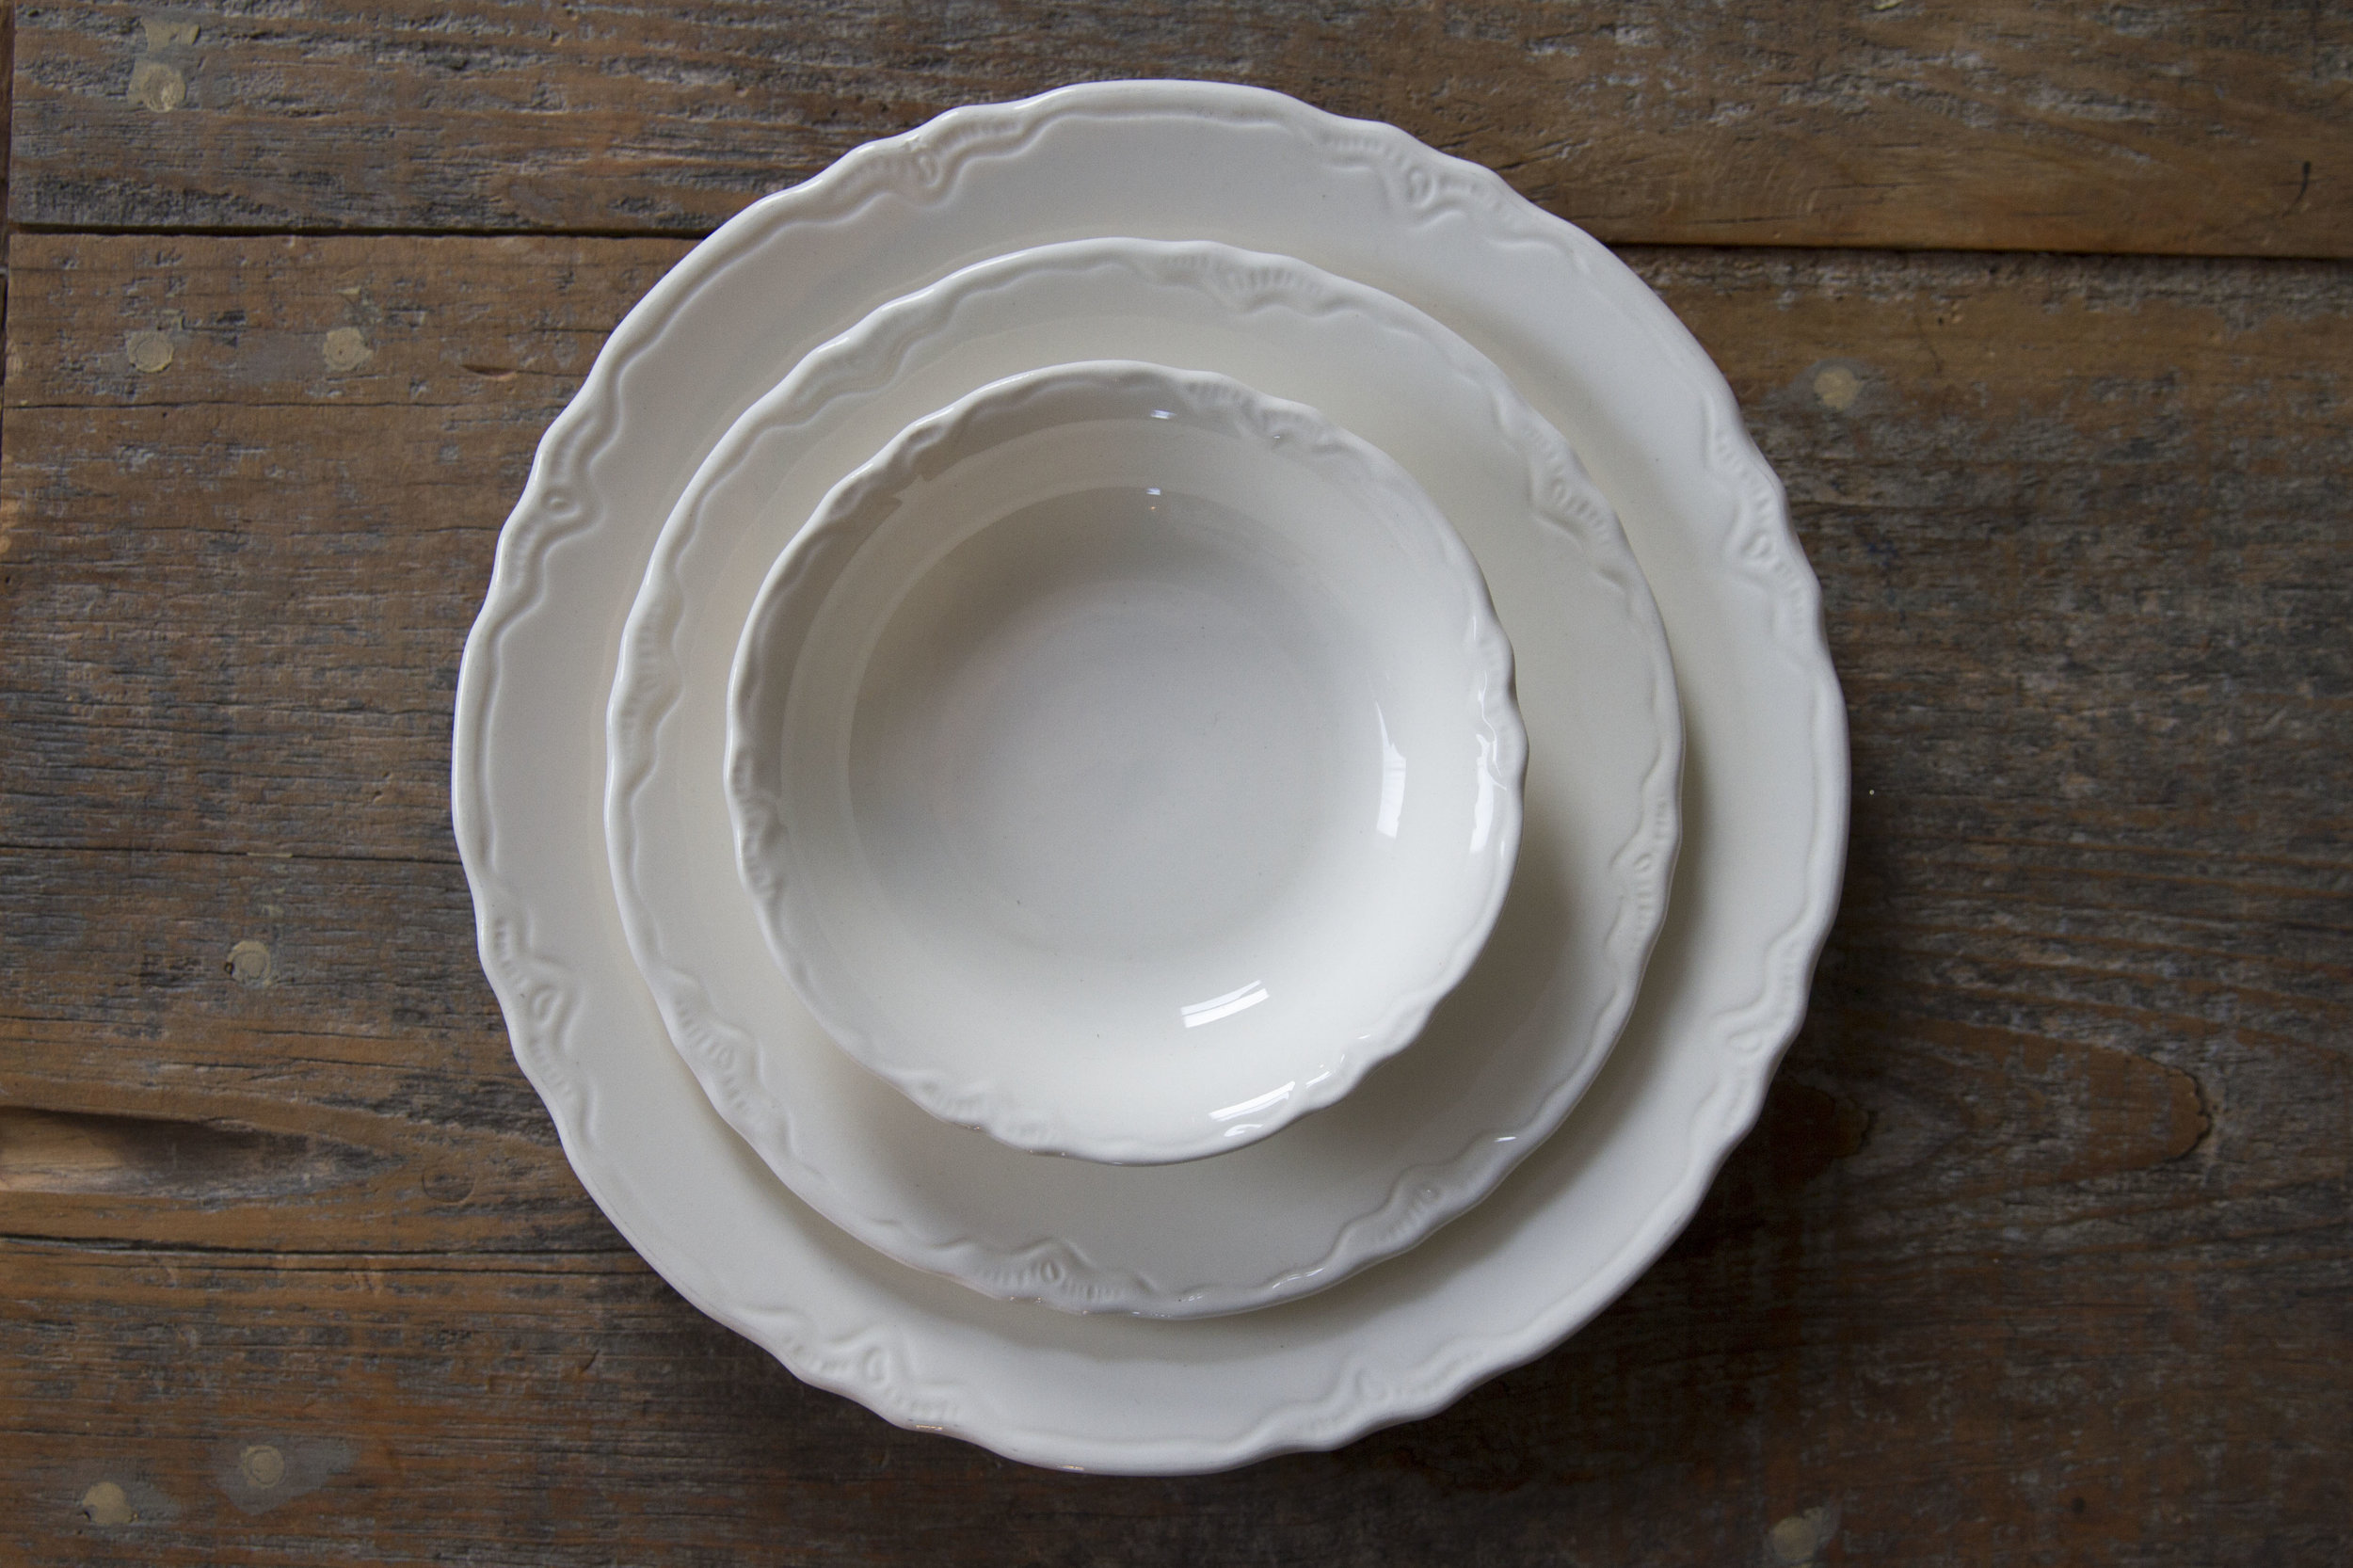 Quantity: 18 Large Plates, 10 Small Plates, 10 Small Bowls  Price: $2 each piece